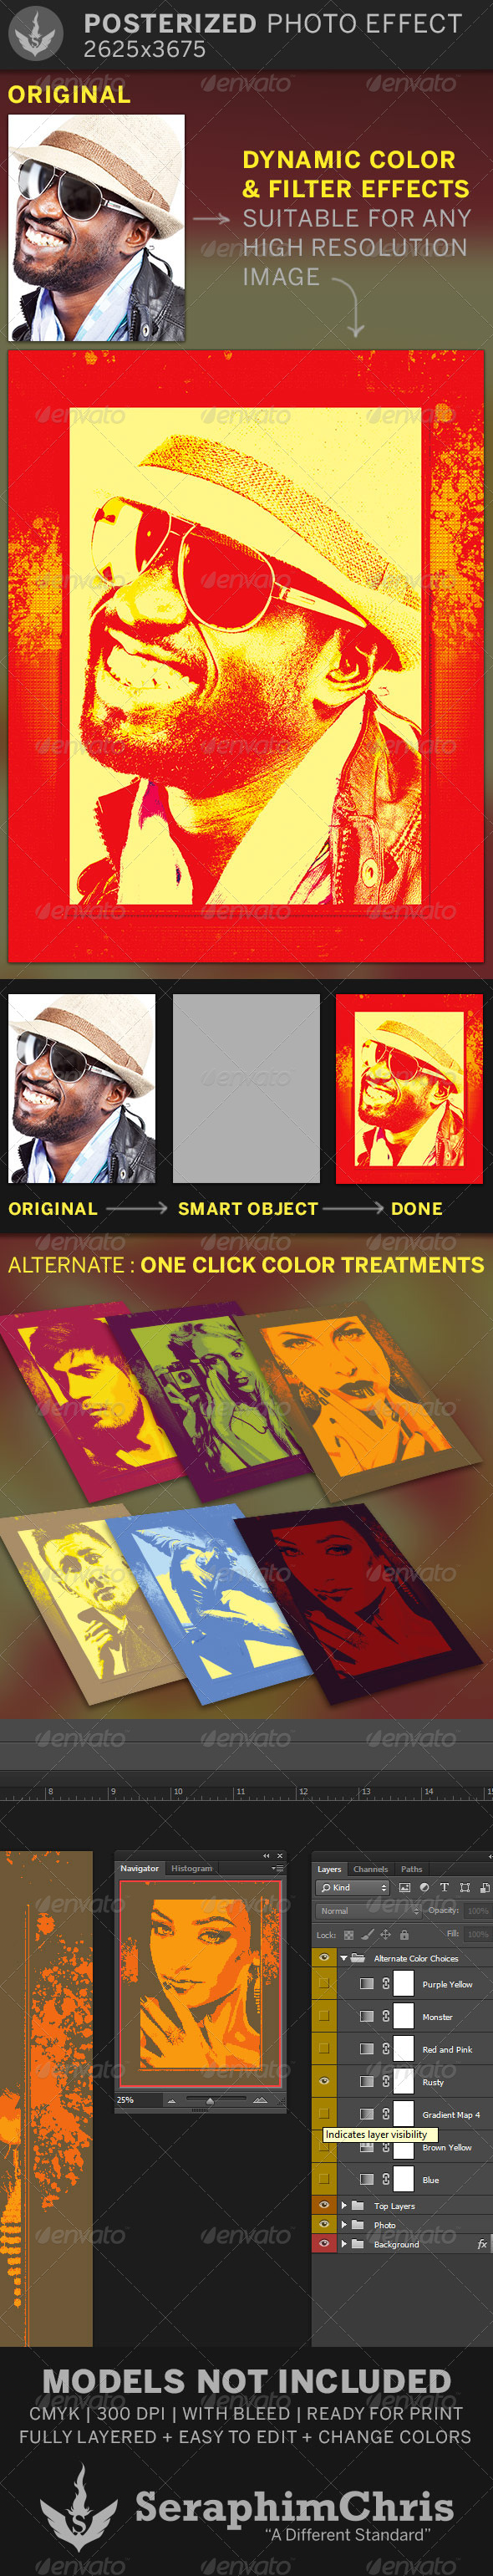 GraphicRiver Posterized Photo Effect Template 6739333